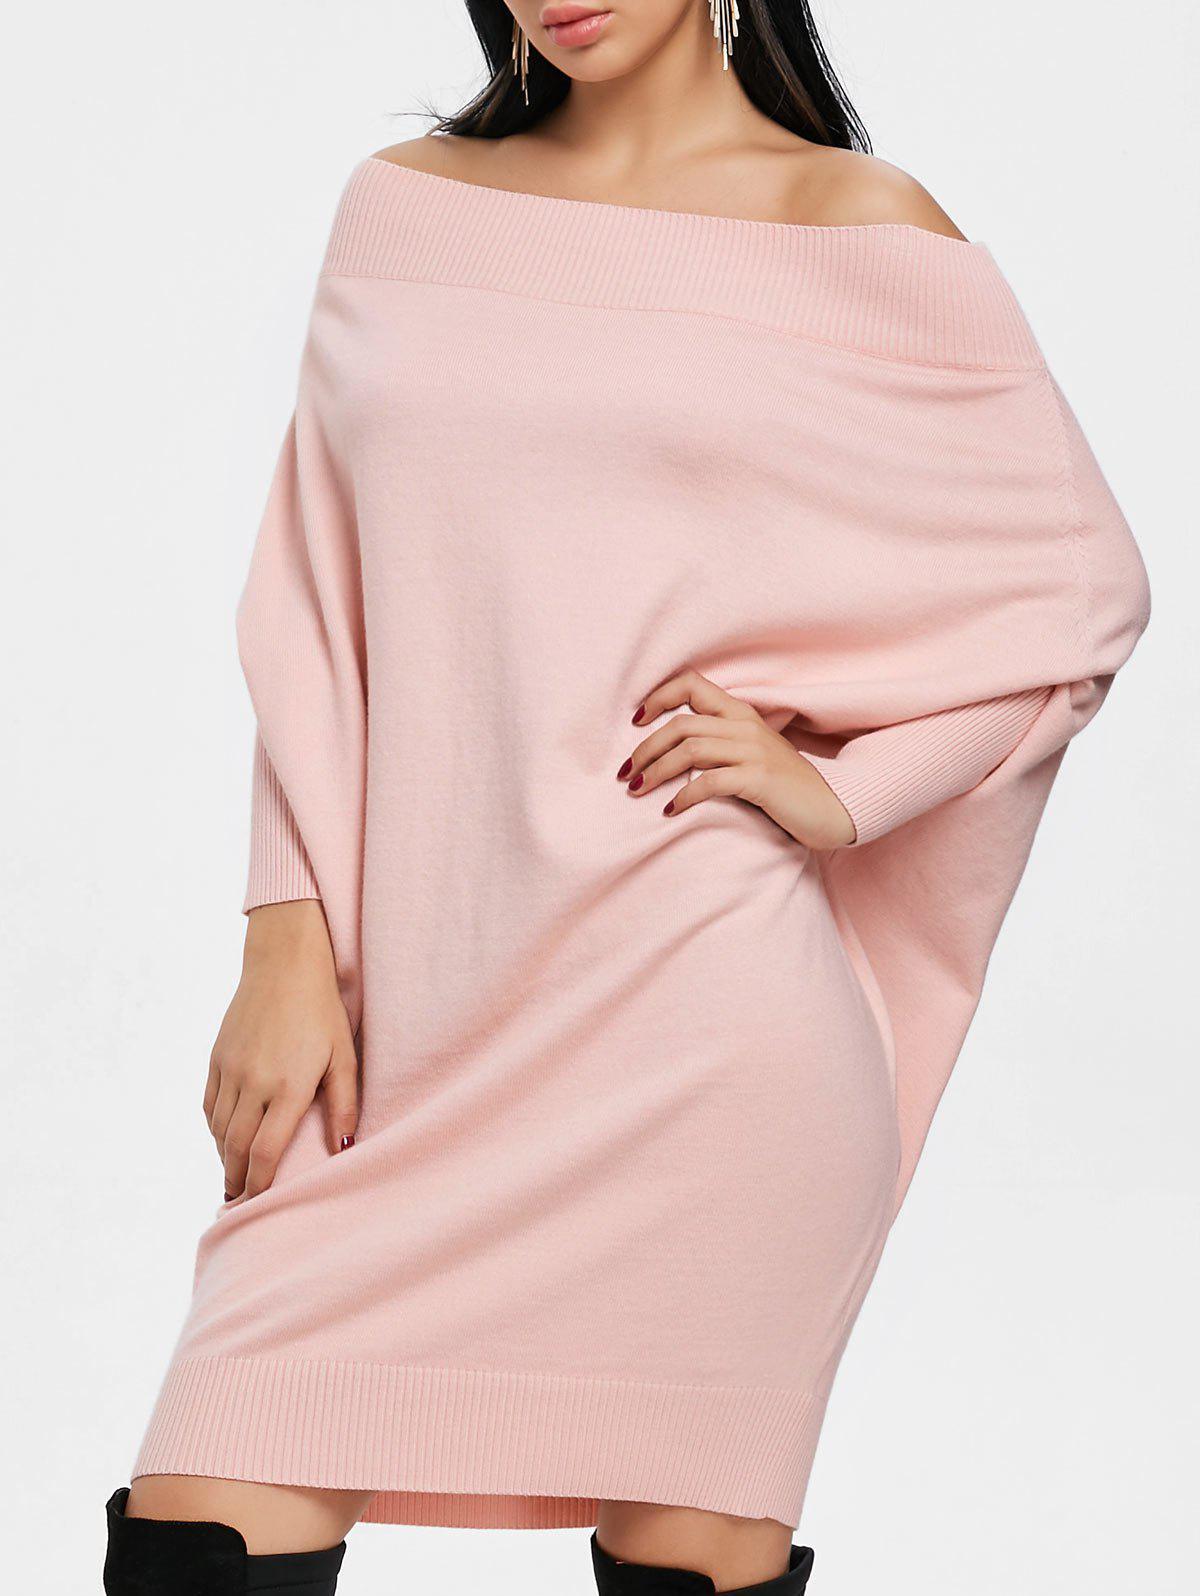 Kintted Off The Shoulder Batwing Sleeve Dress - PINK M